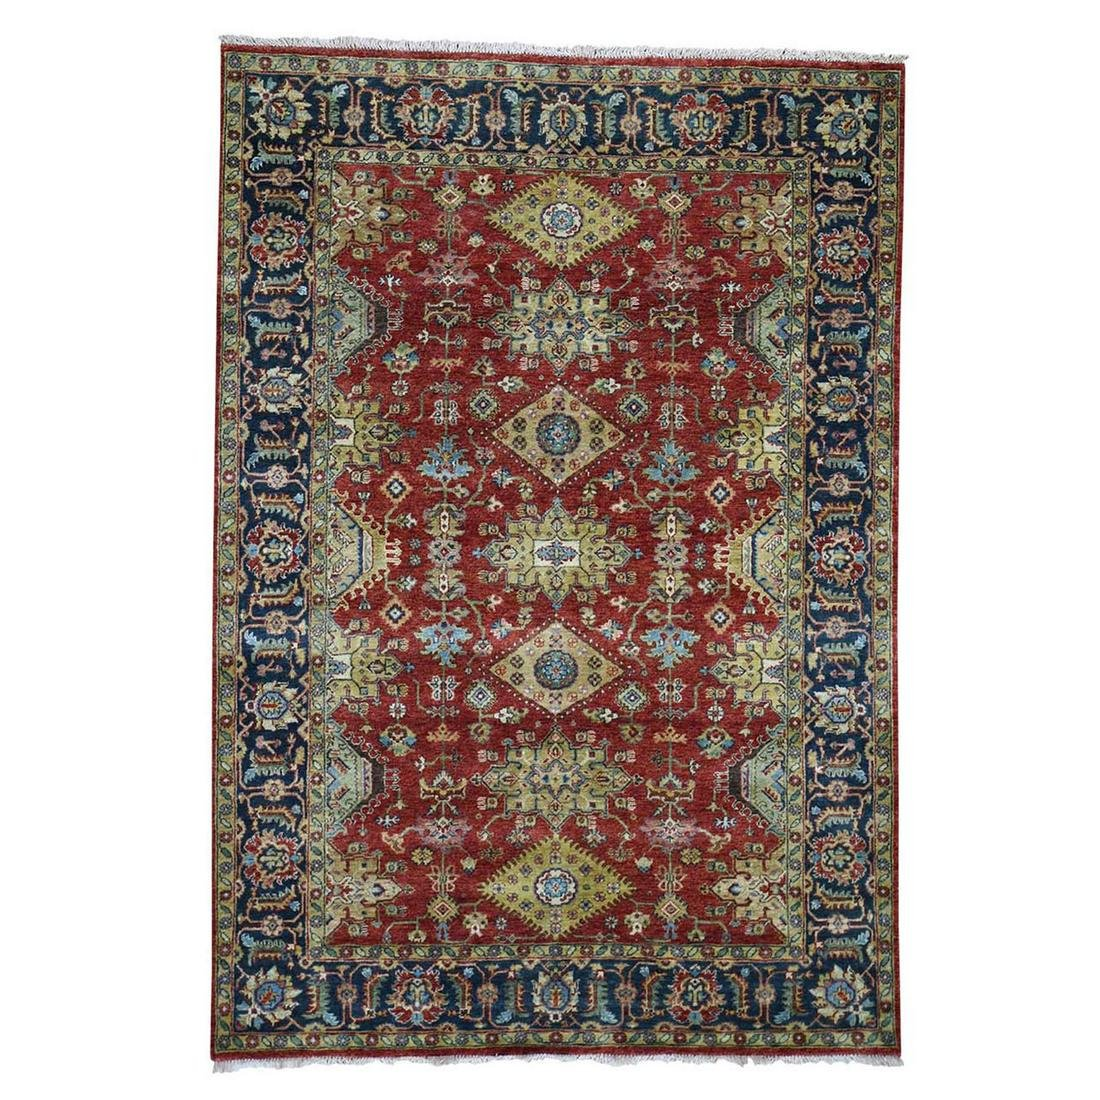 Red Karajeh Design Pure Wool Hand-Knotted Oriental Rug